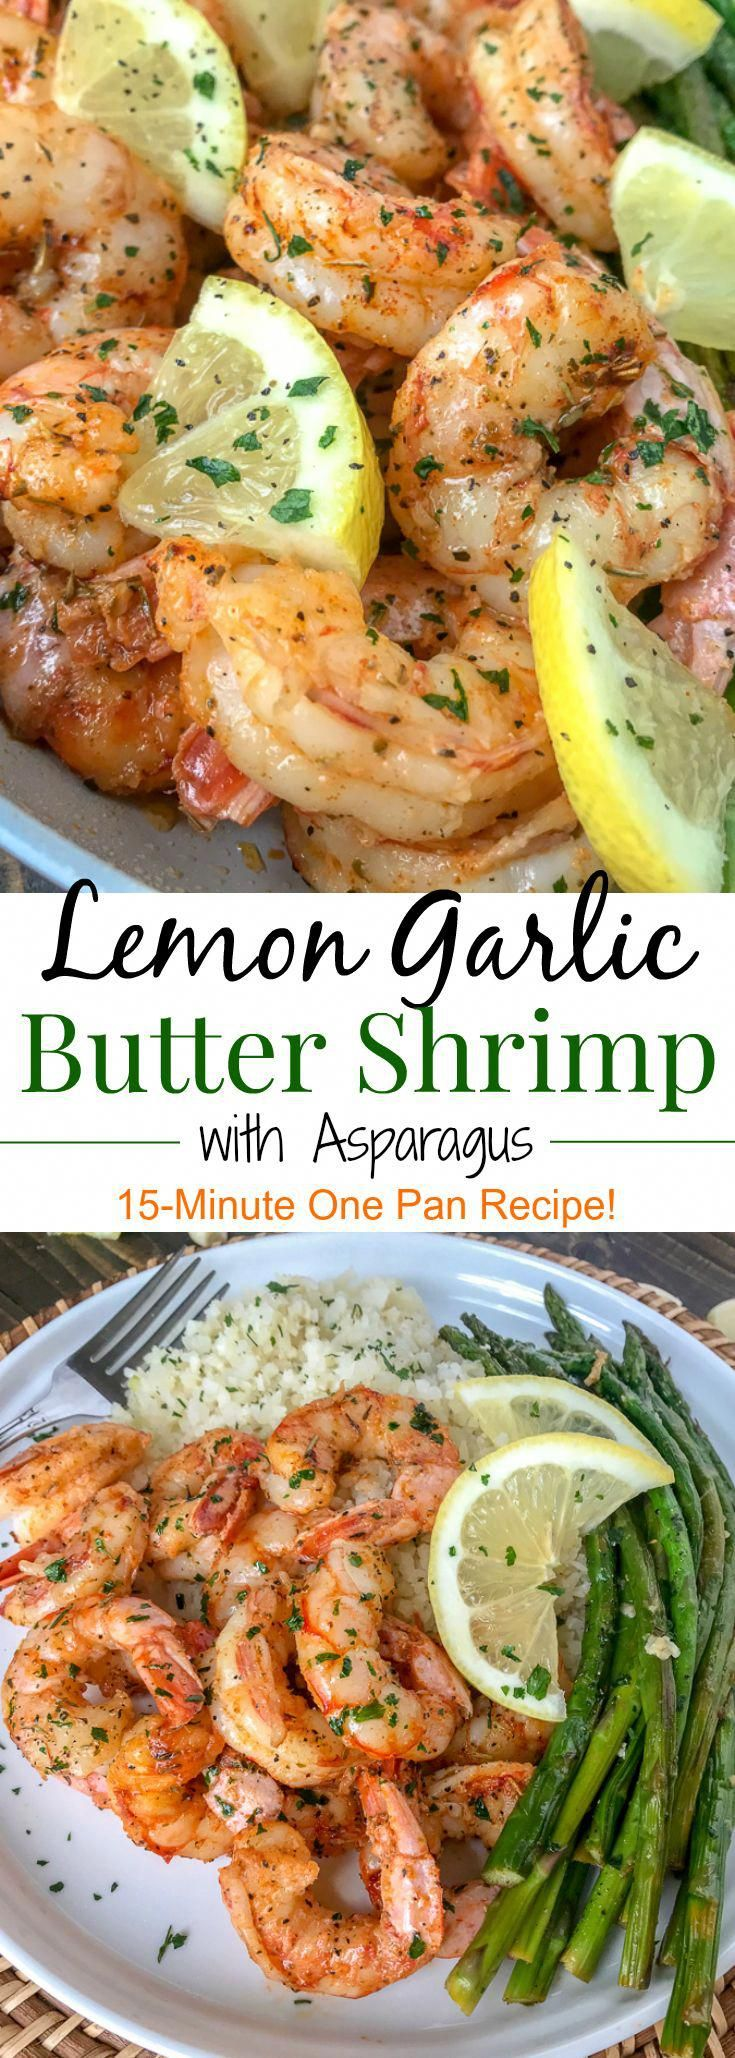 Lemon Garlic Butter Shrimp with Asparagus #healthyeating